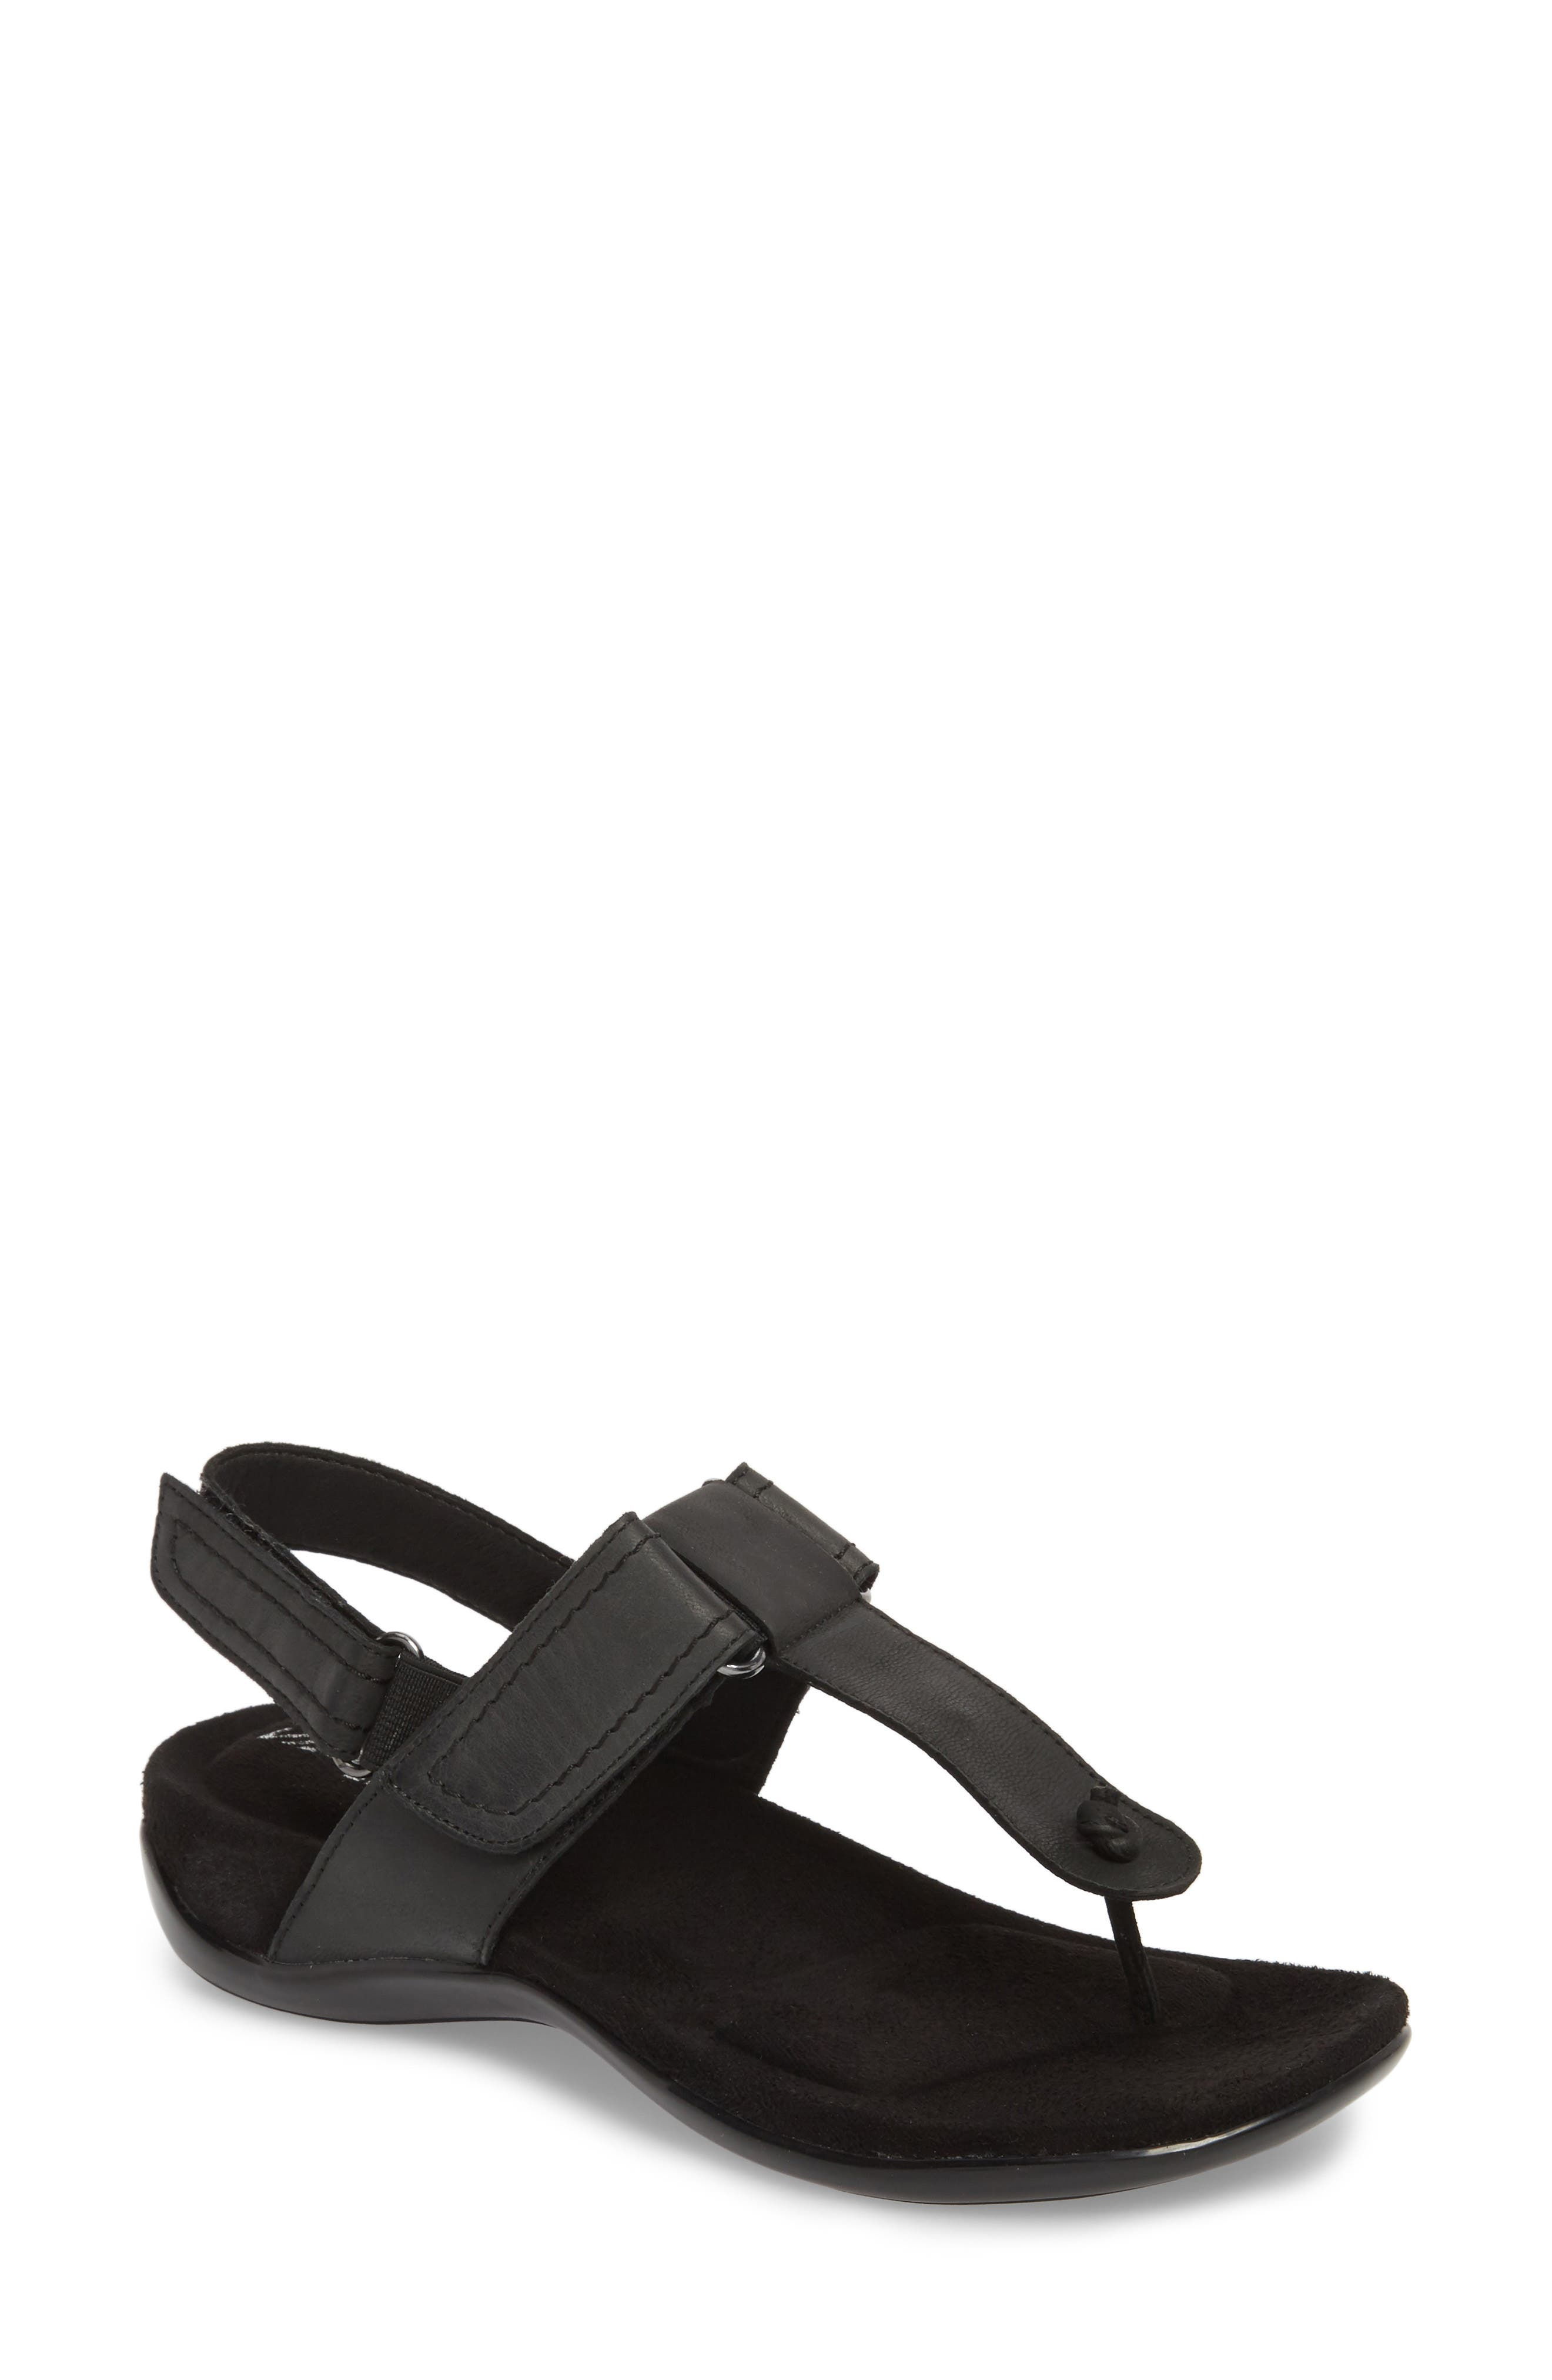 Valley Sandal,                         Main,                         color, 001